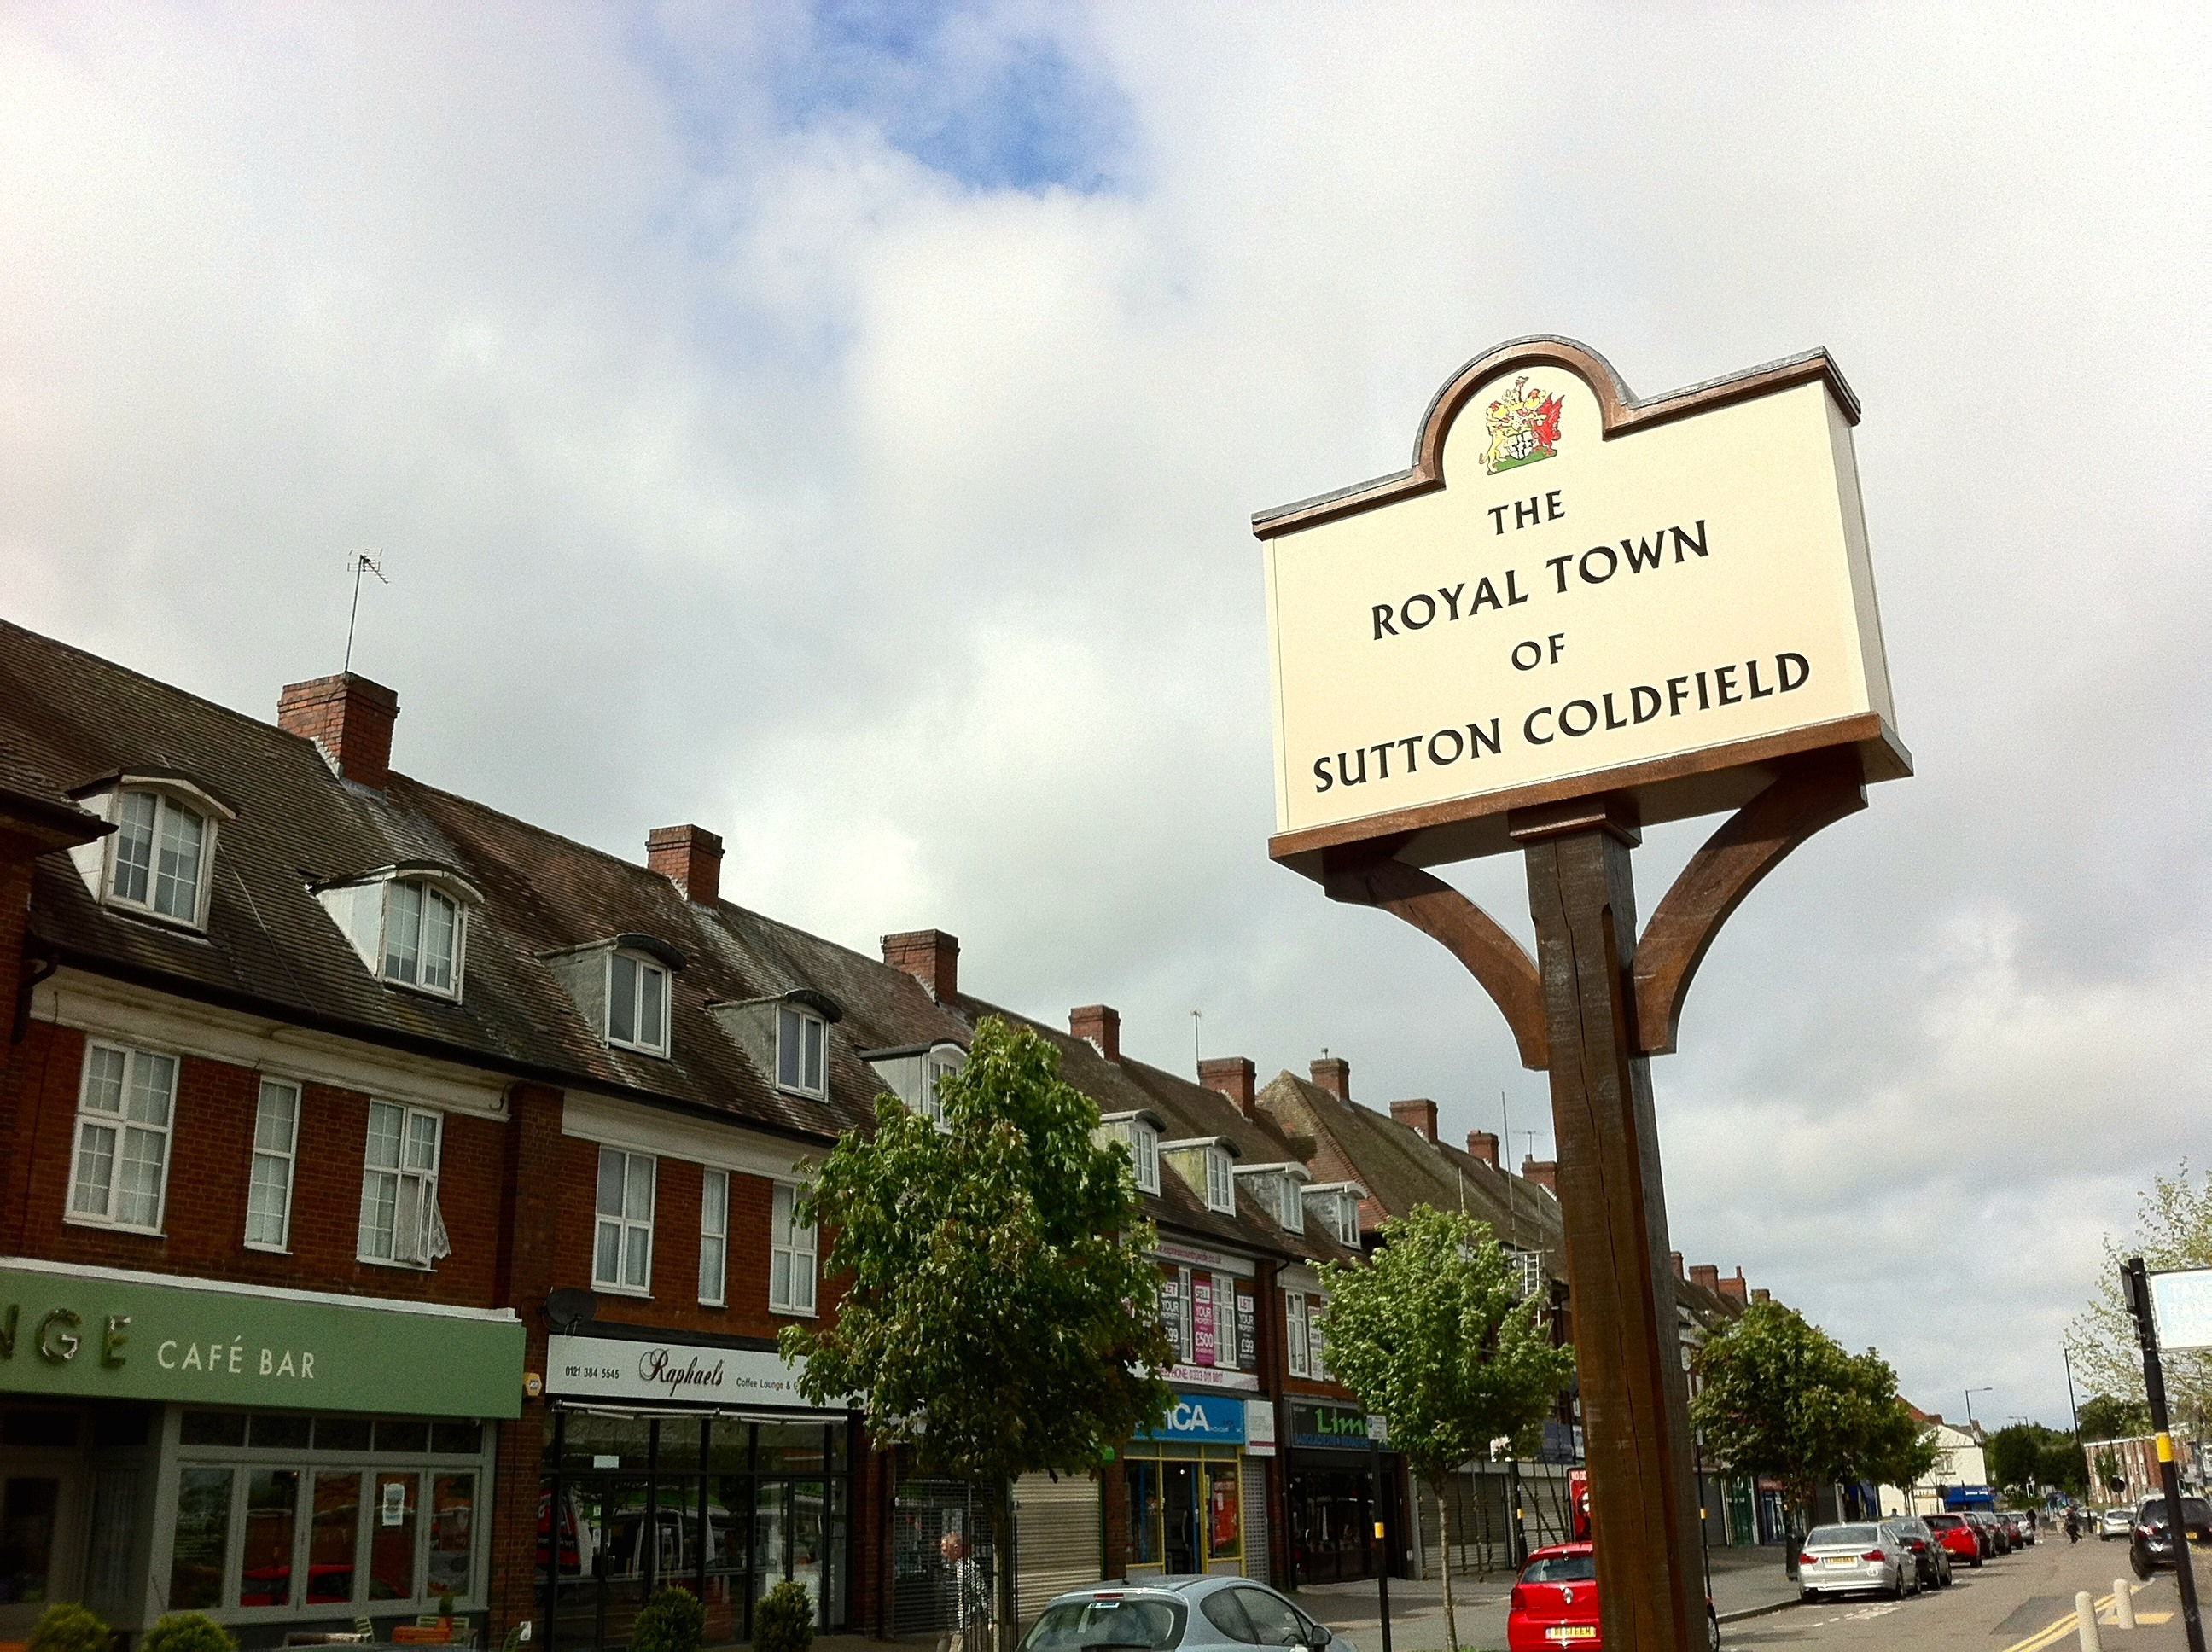 how do you have sex in Sutton Coldfield